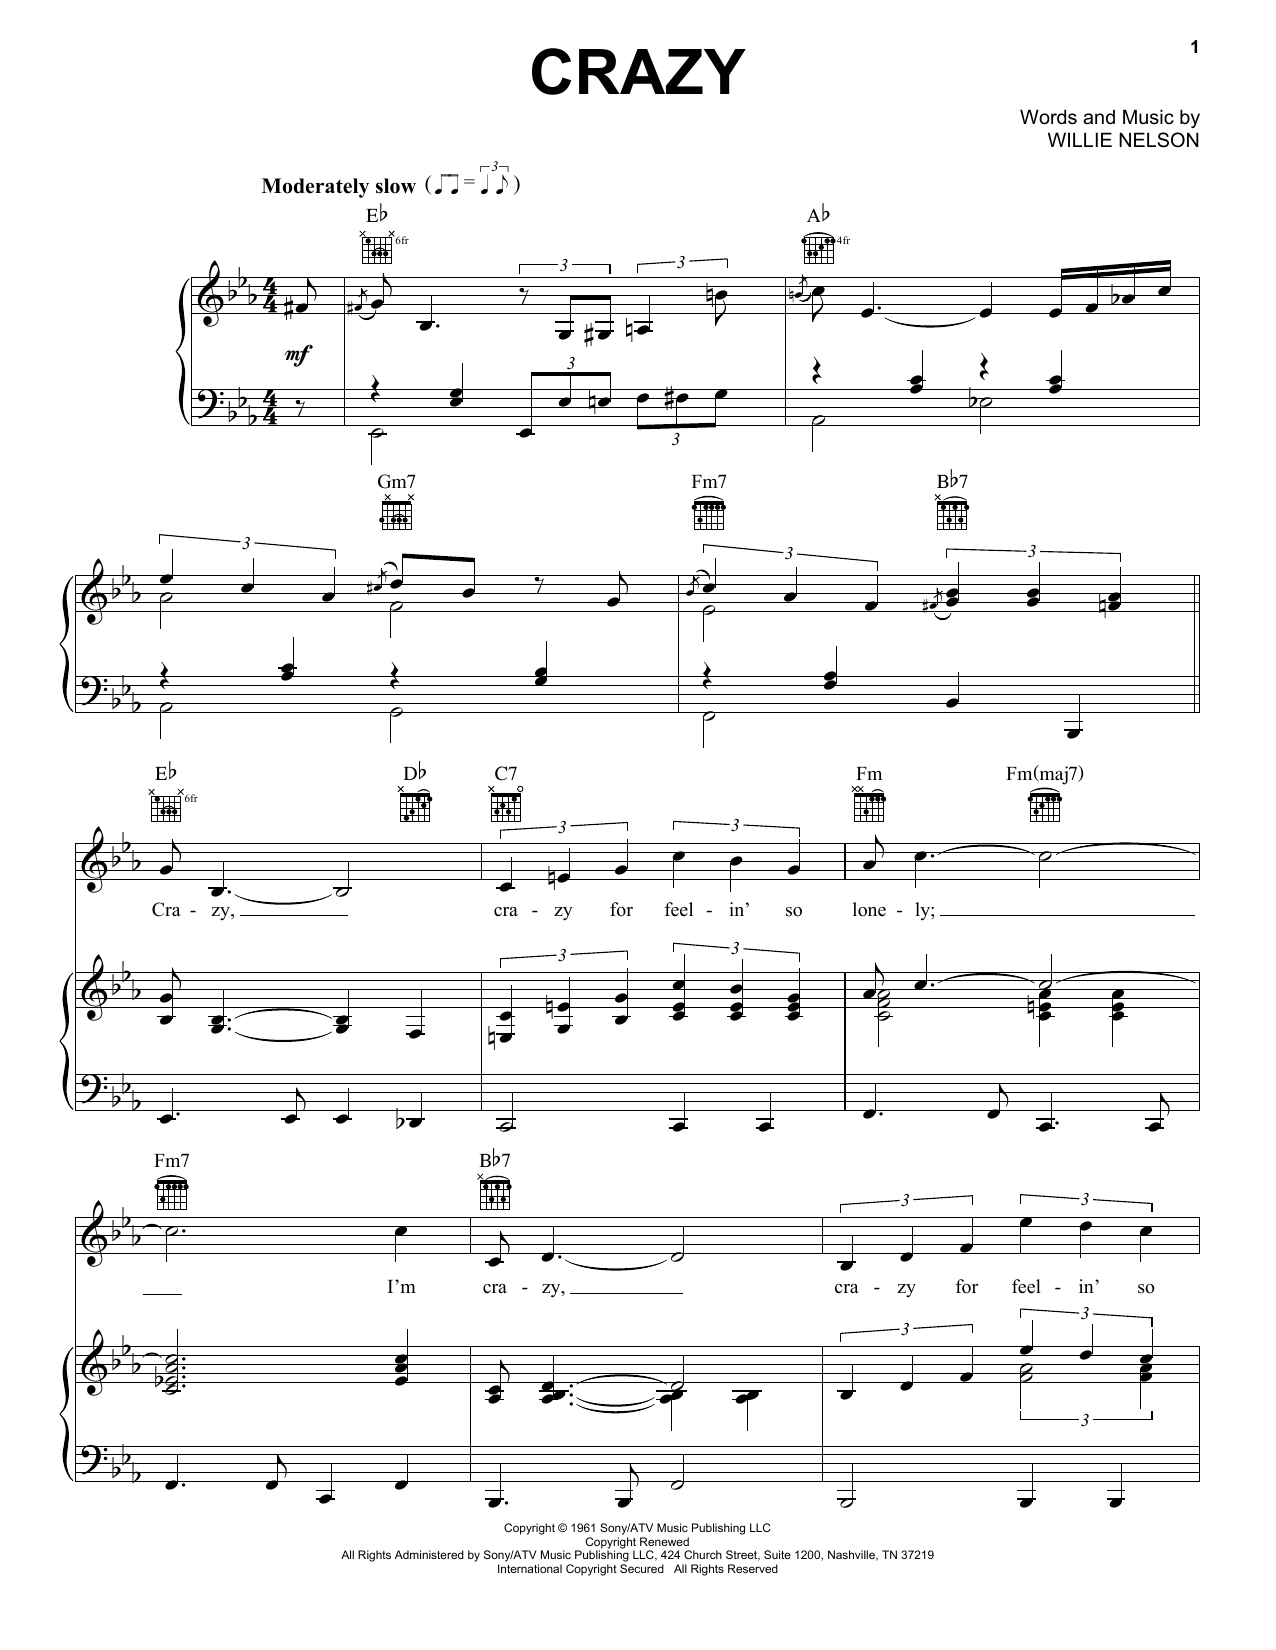 Patsy Cline Crazy sheet music notes and chords